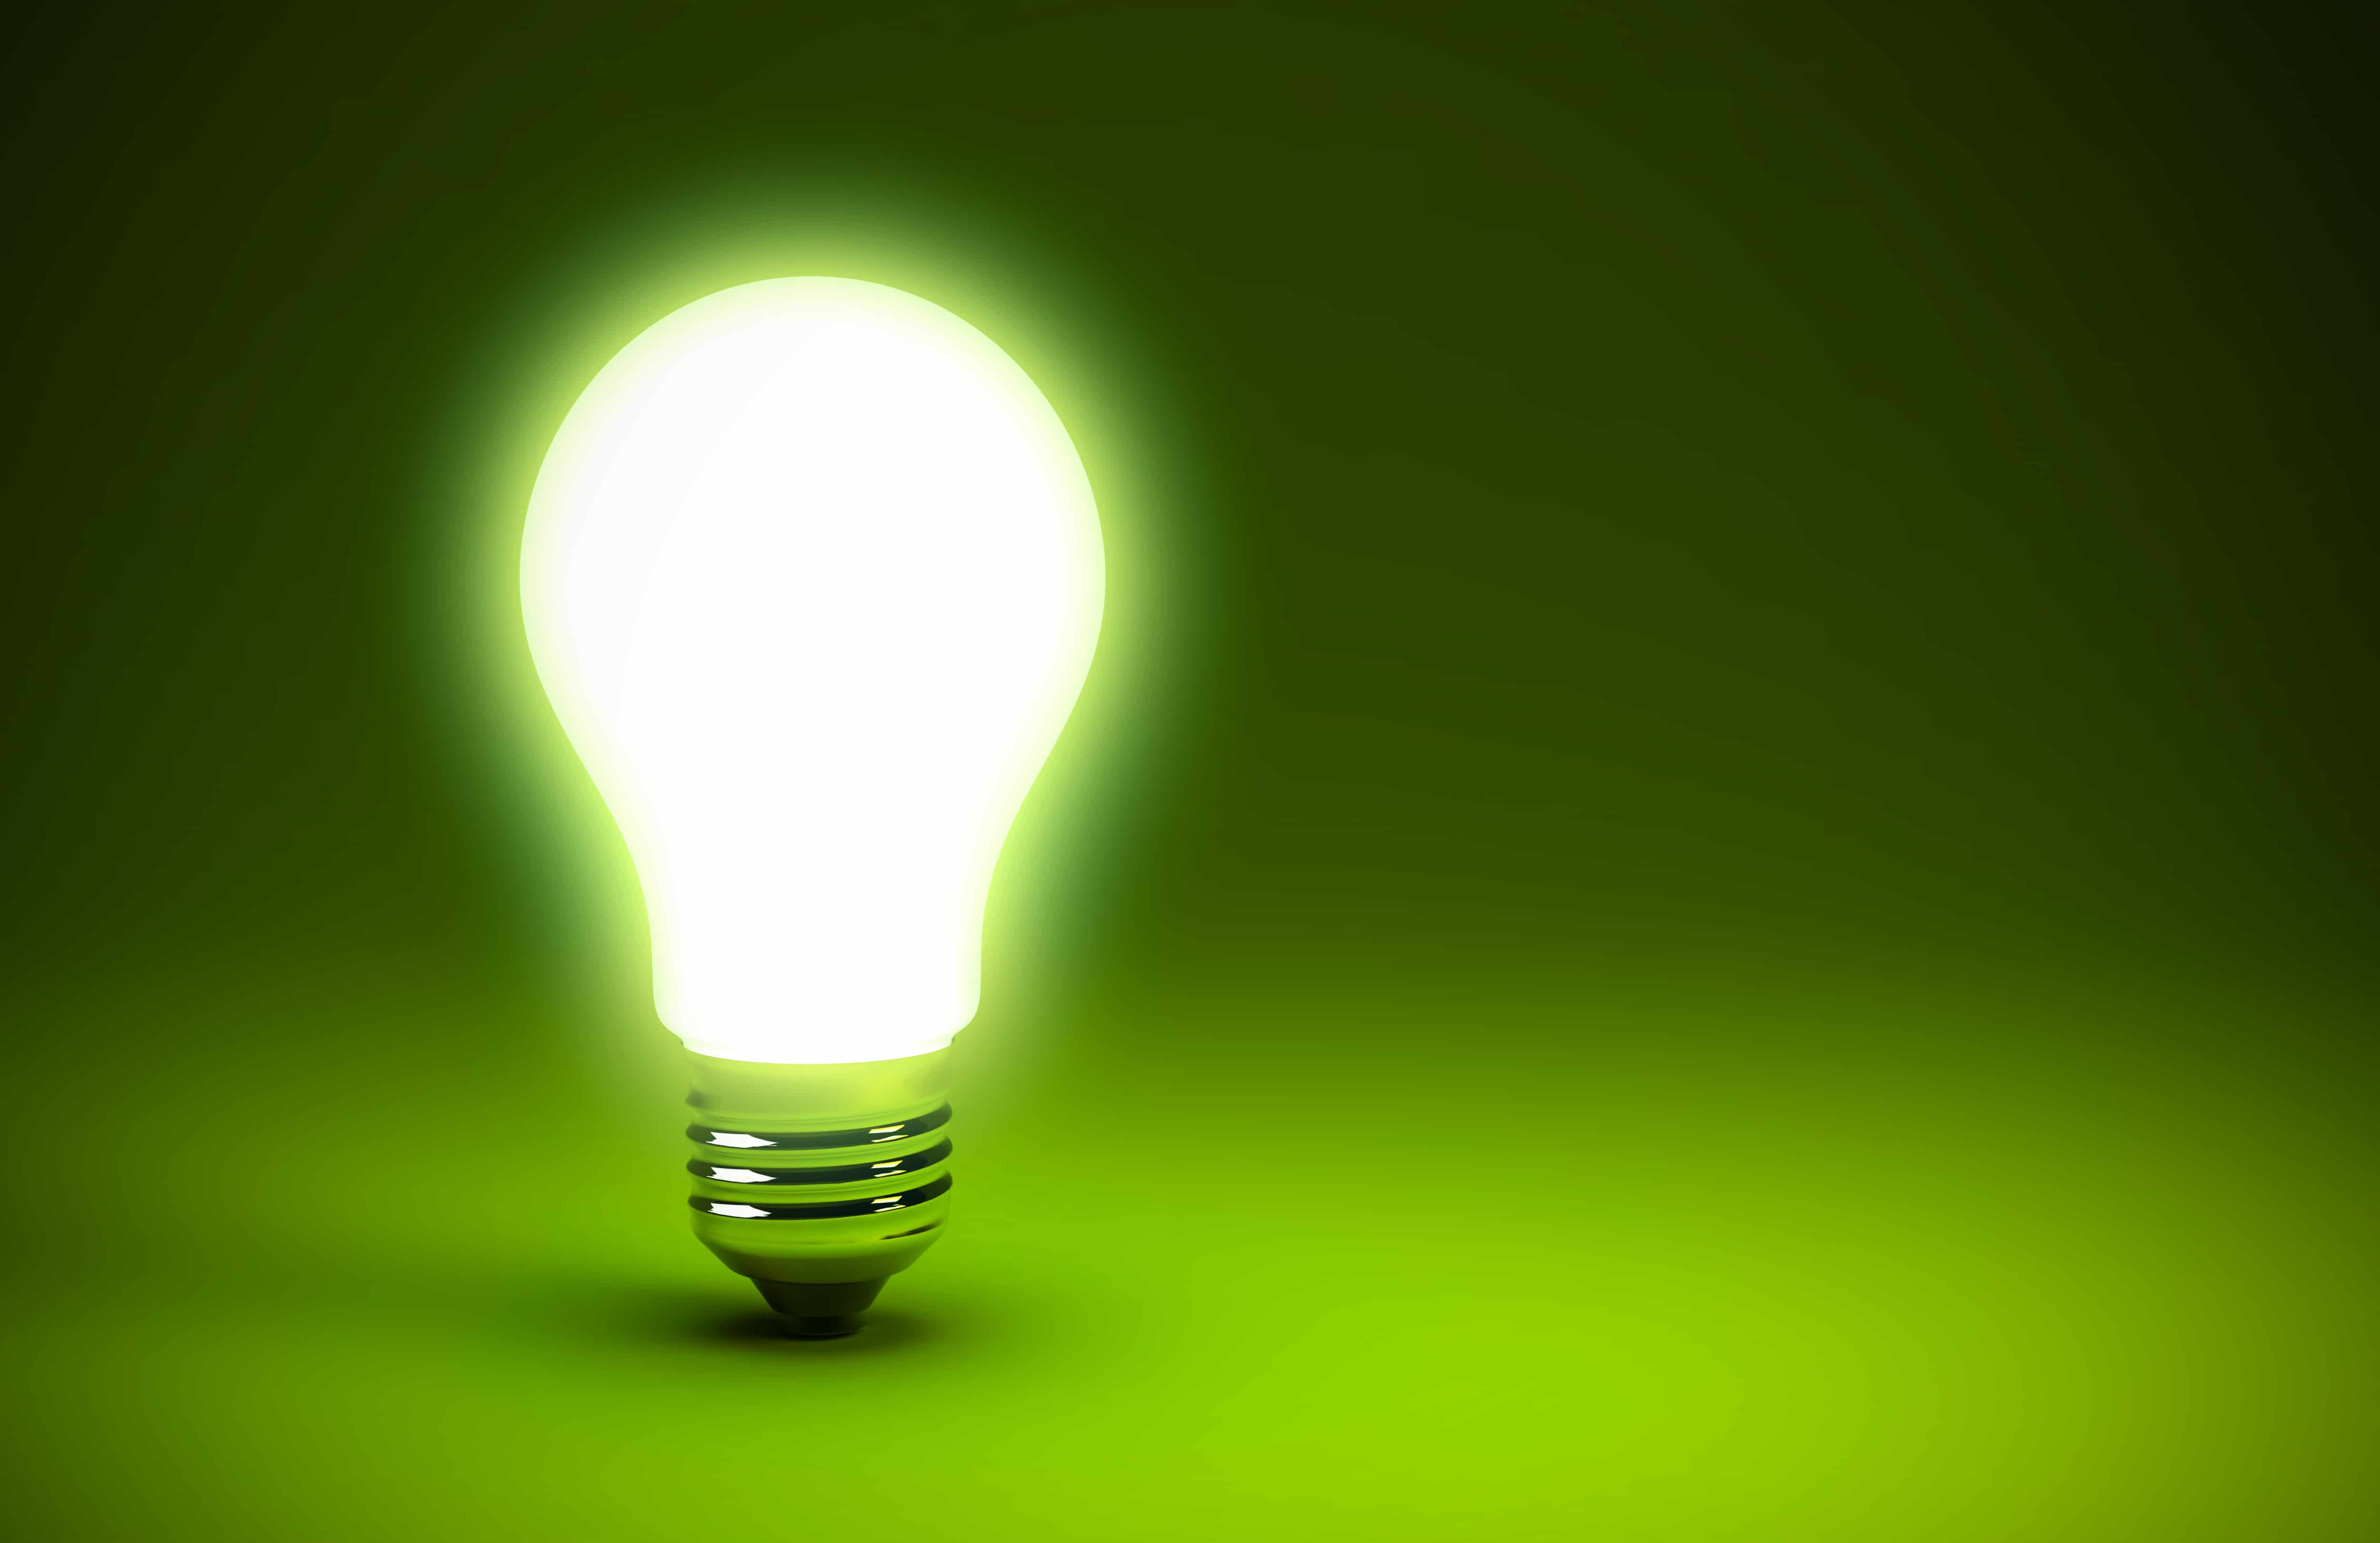 Troubleshooting Common Light Bulb Issues